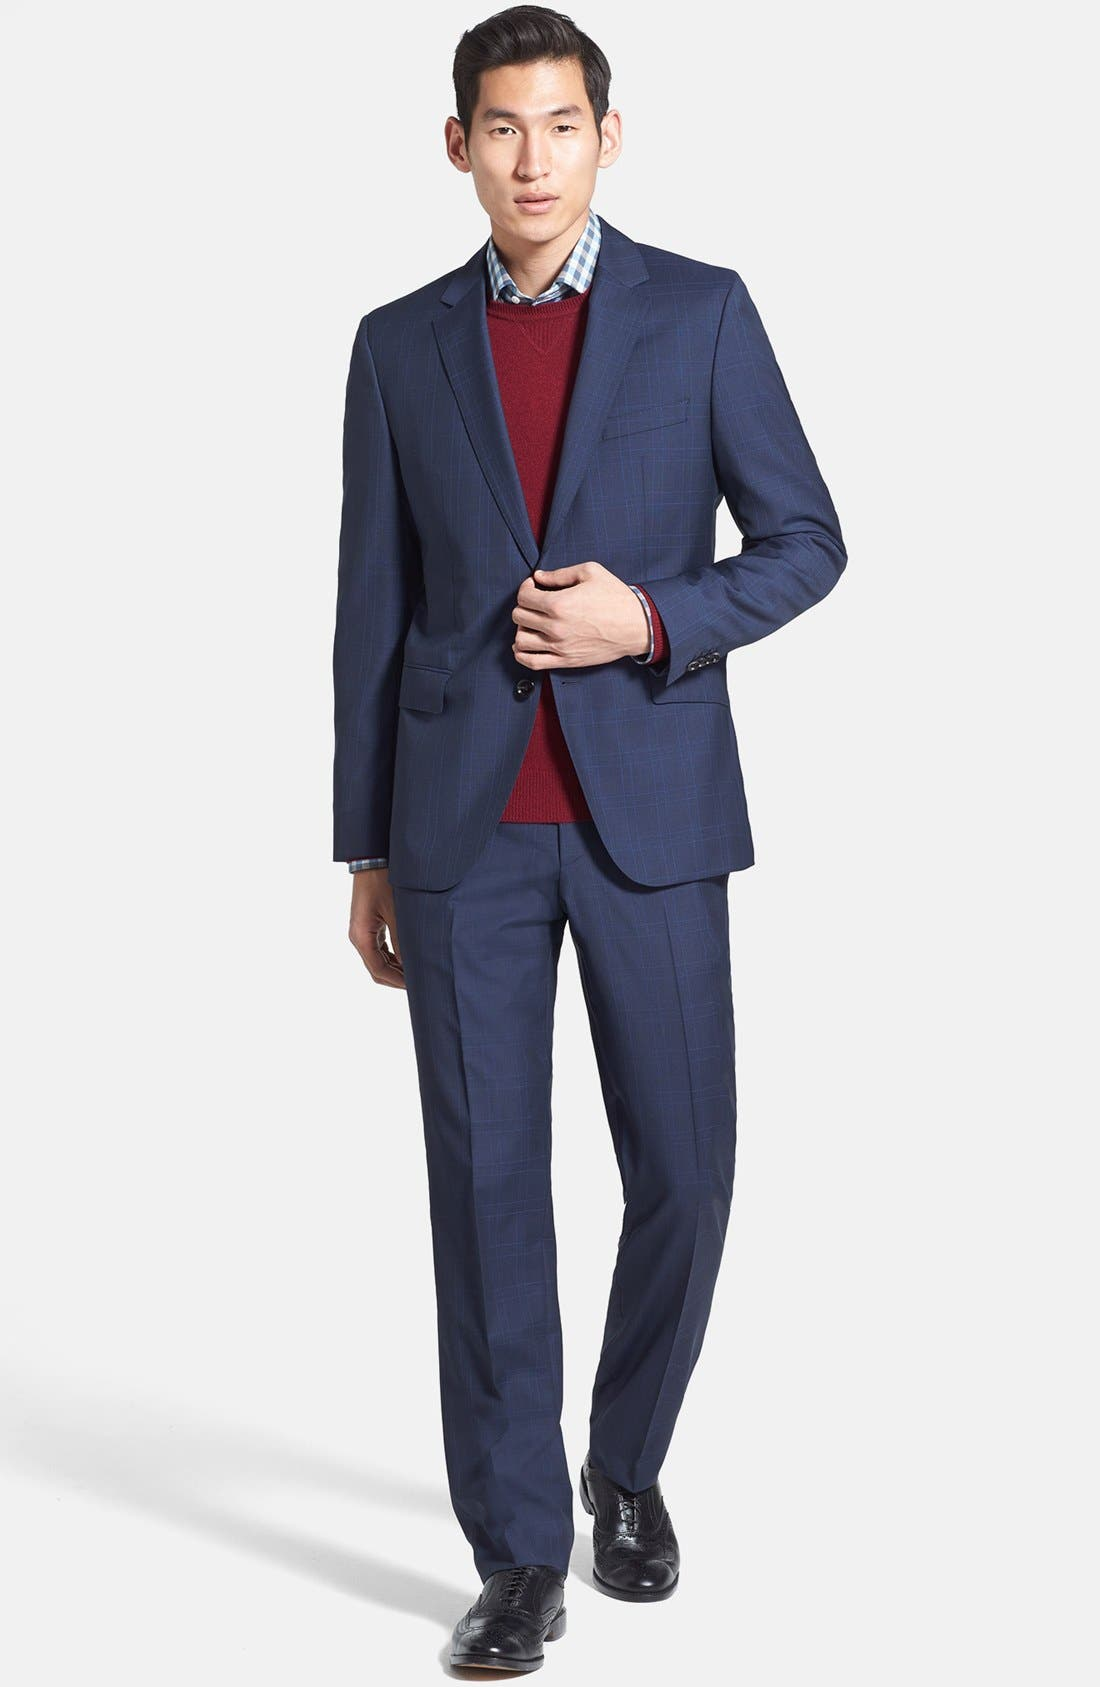 Main Image - BOSS HUGO BOSS 'James/Sharp' Trim Fit Windowpane Suit